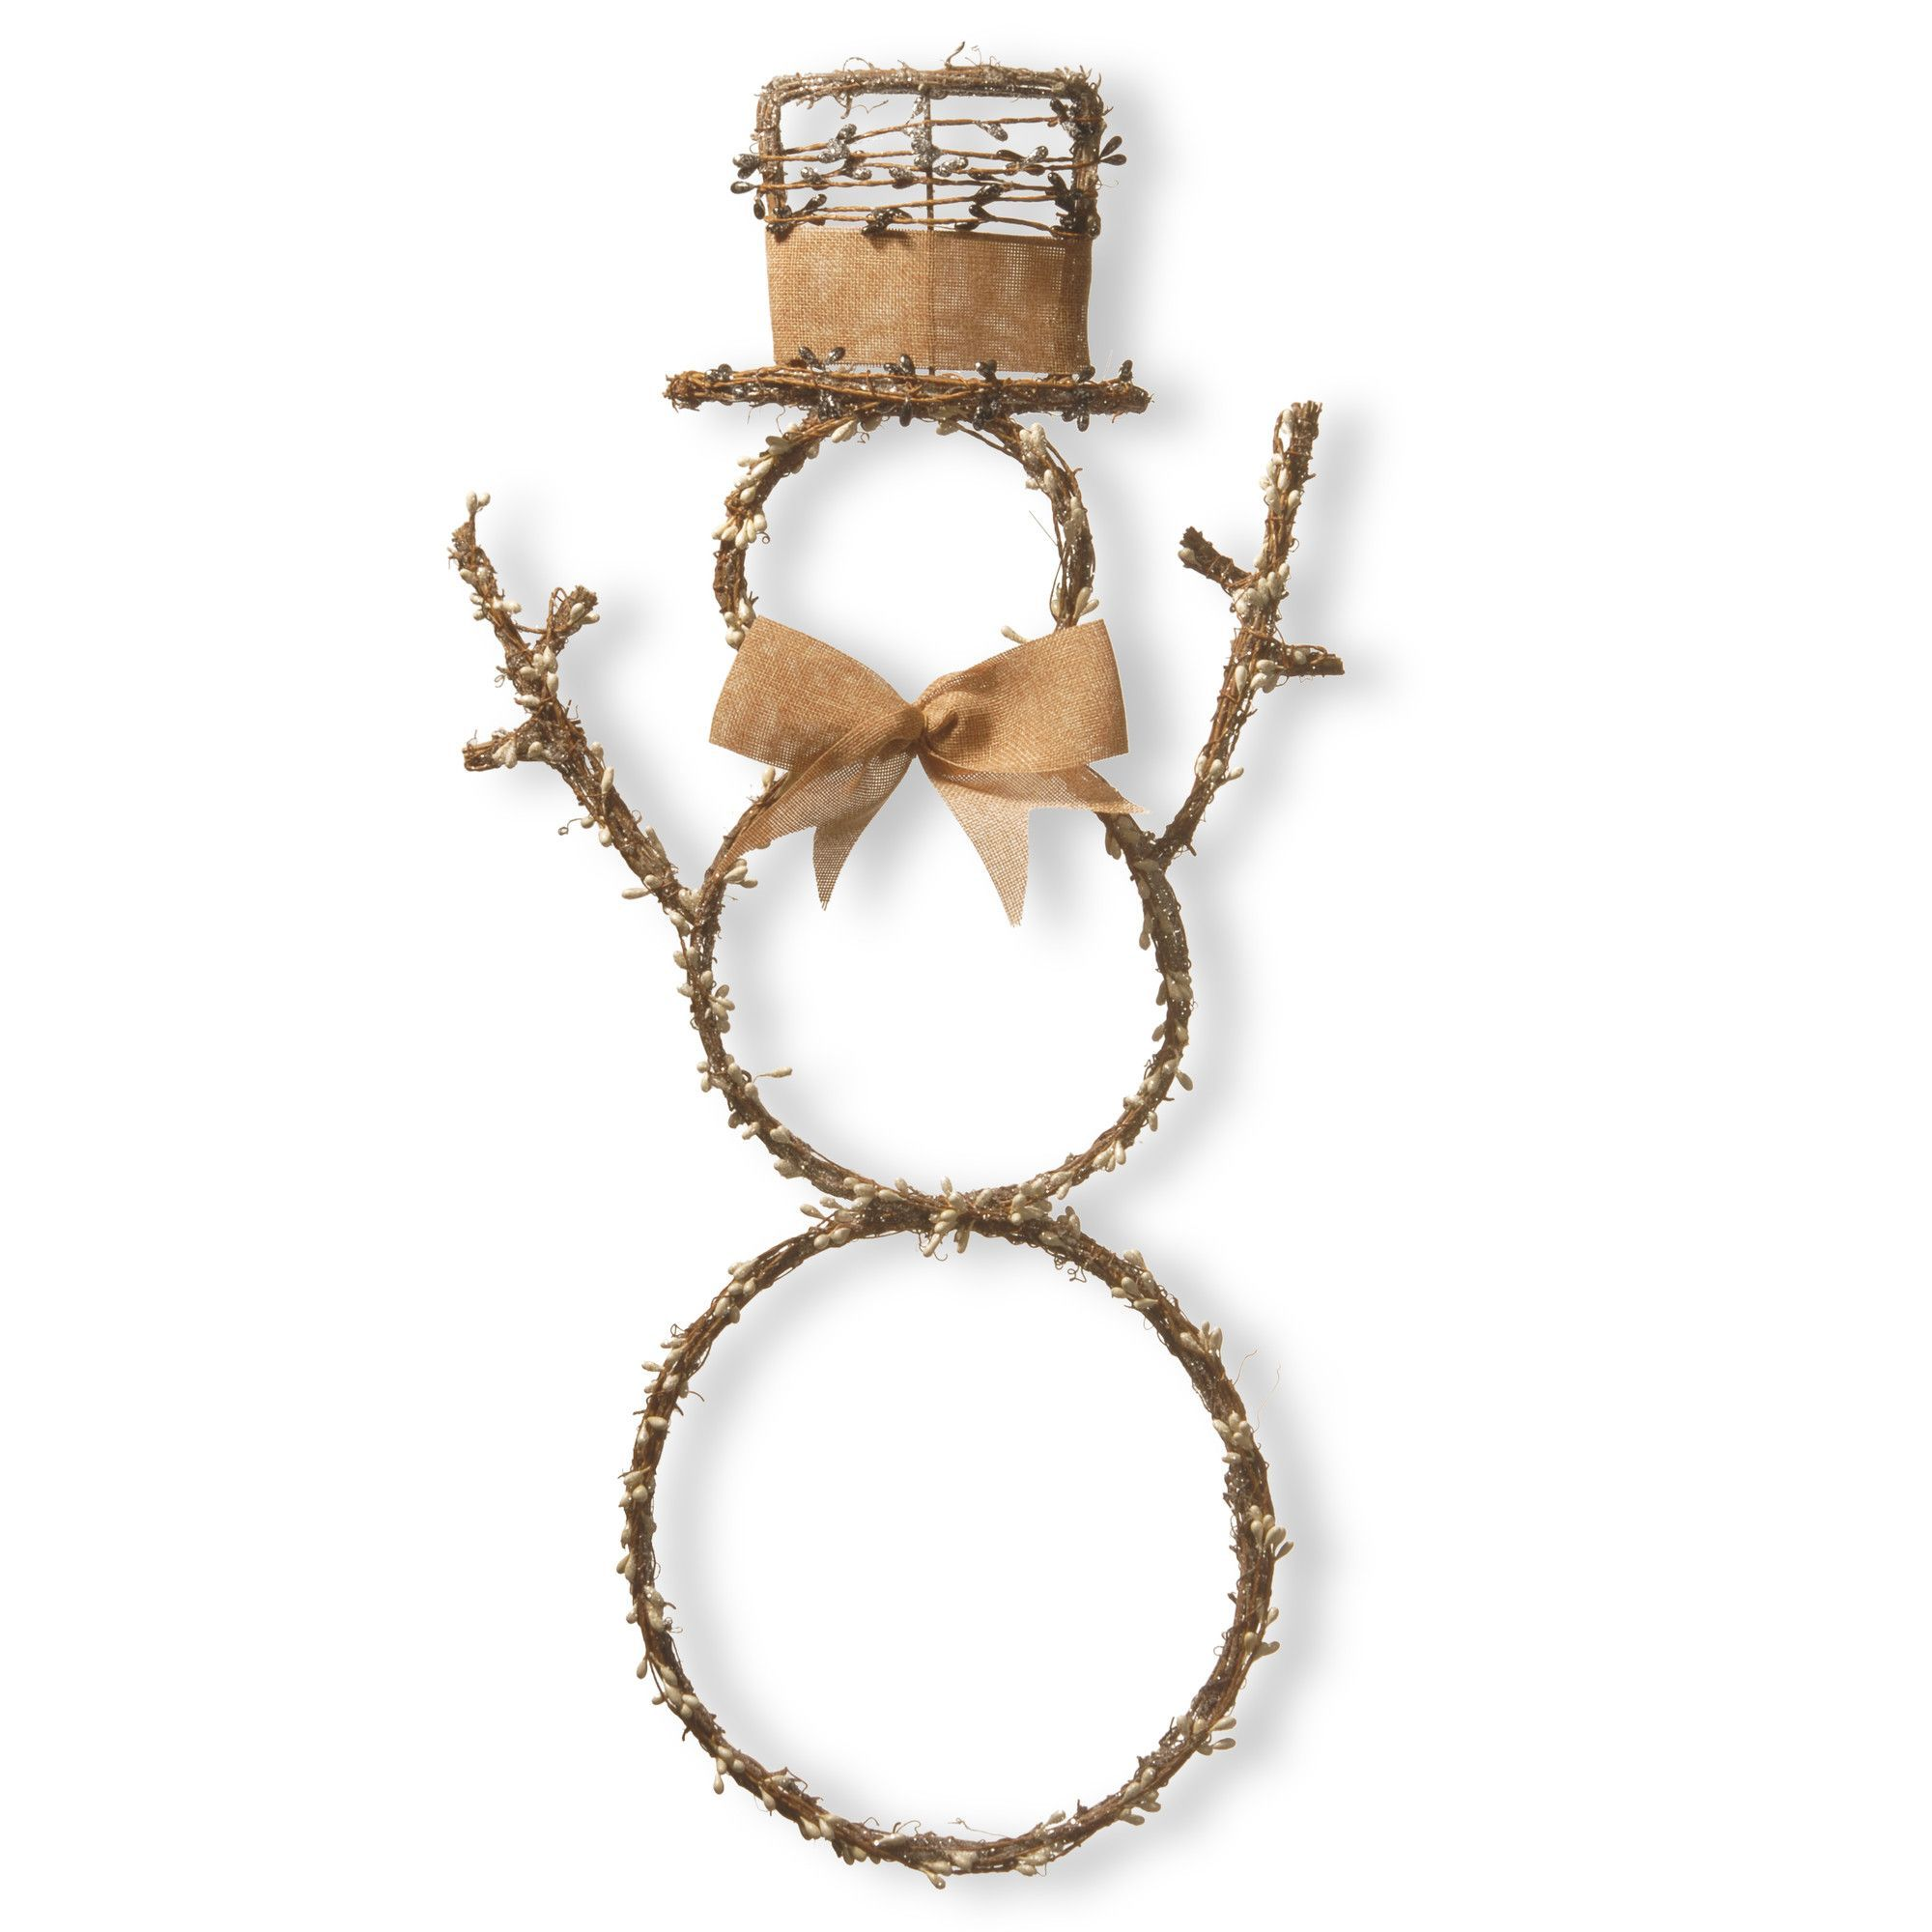 Features metal frame construction woven wood branches with